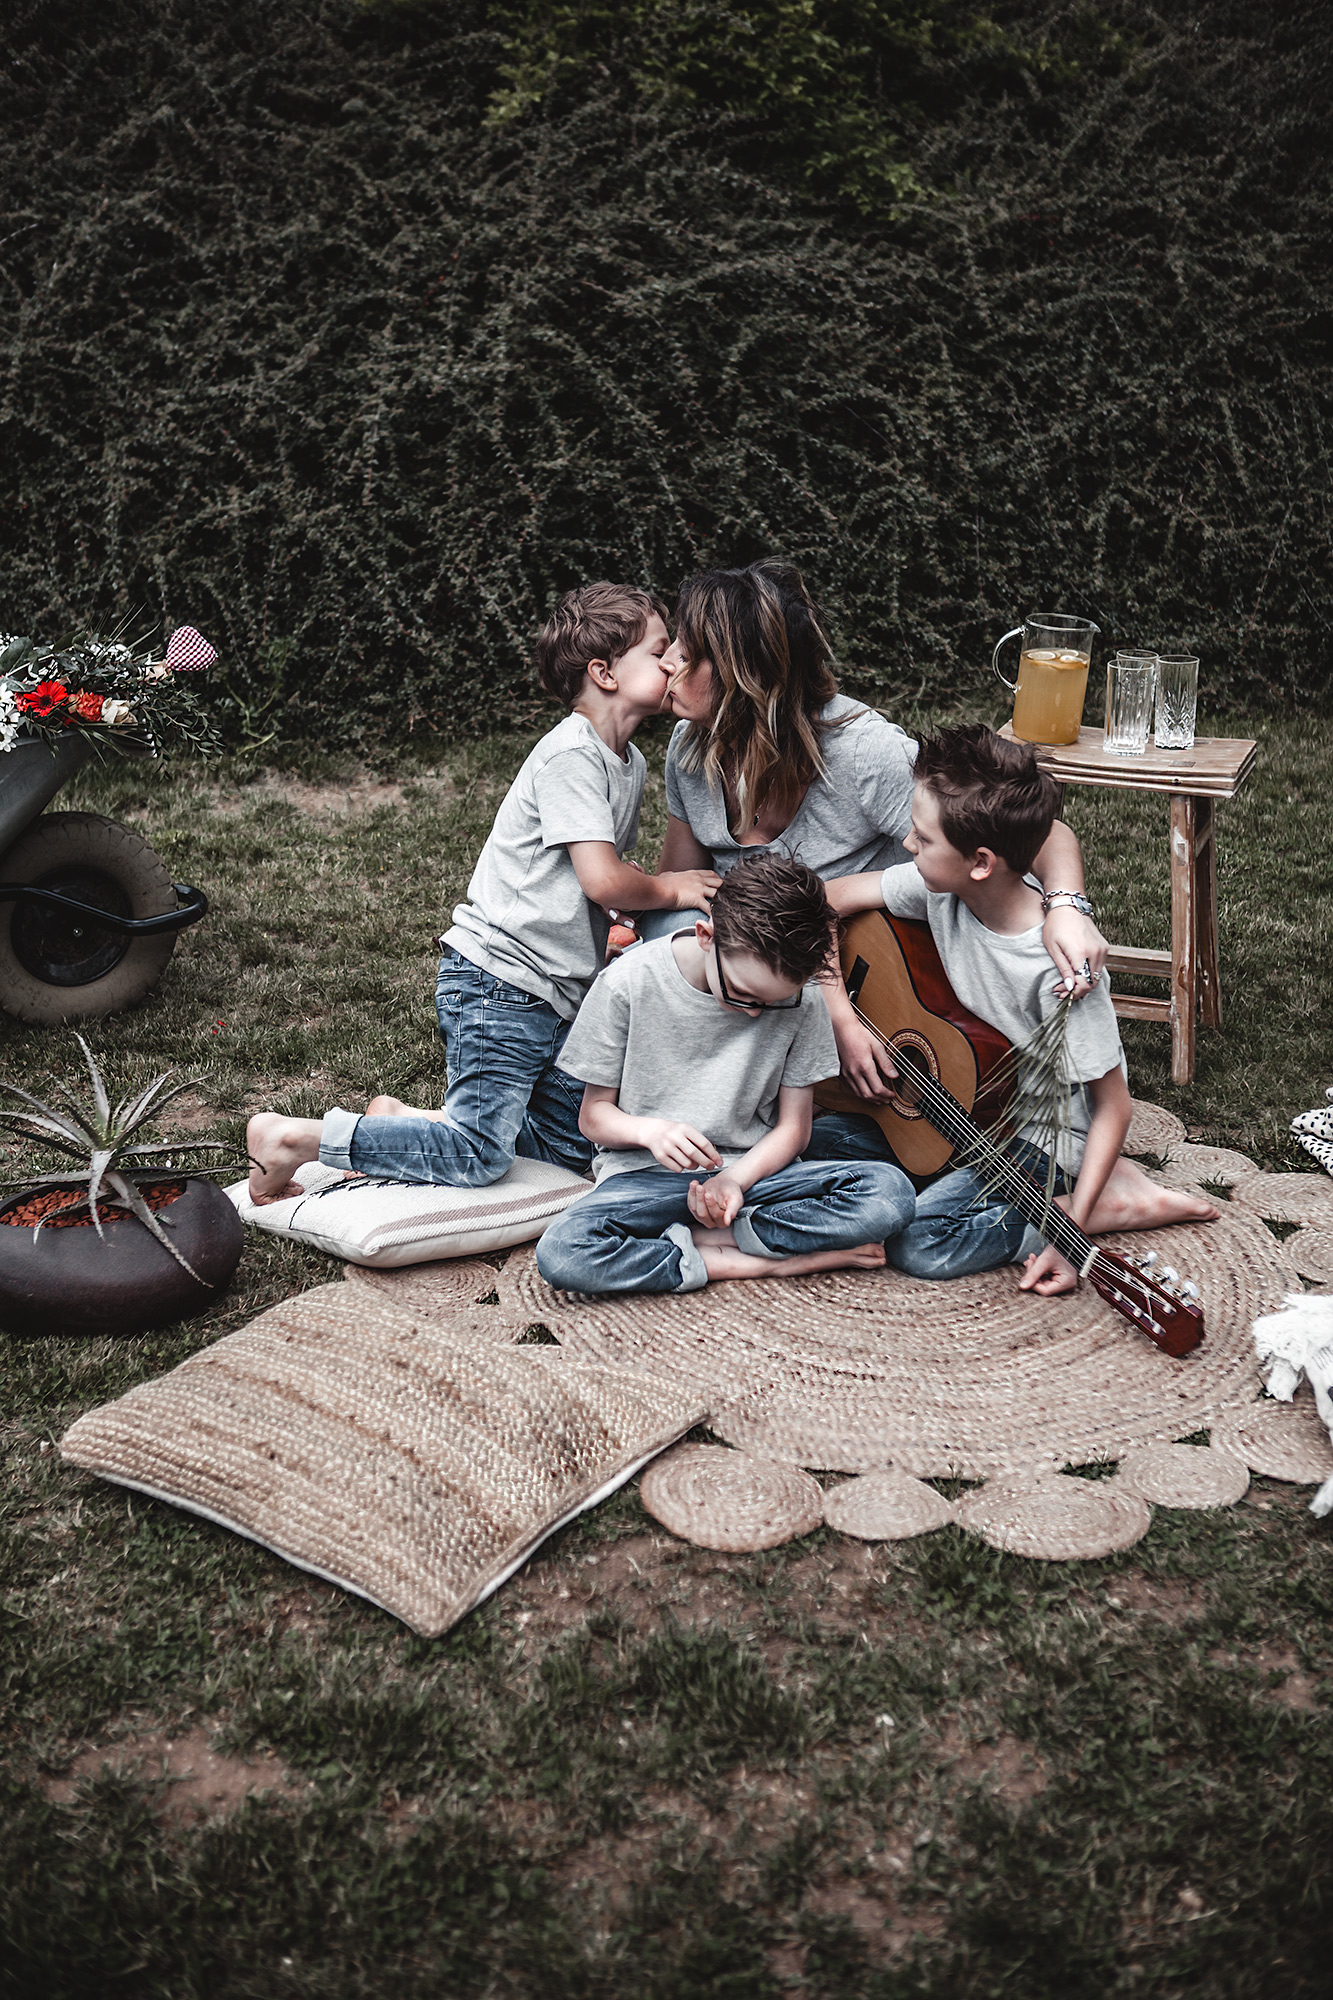 With these tips and decorative elements create a simple picnic decor in the garden and make the spot relaxing, familiar & inviting instantly. Family photo, mother and sons, picnic, garden, mother and kids, round jute rug. Mothers day photo.